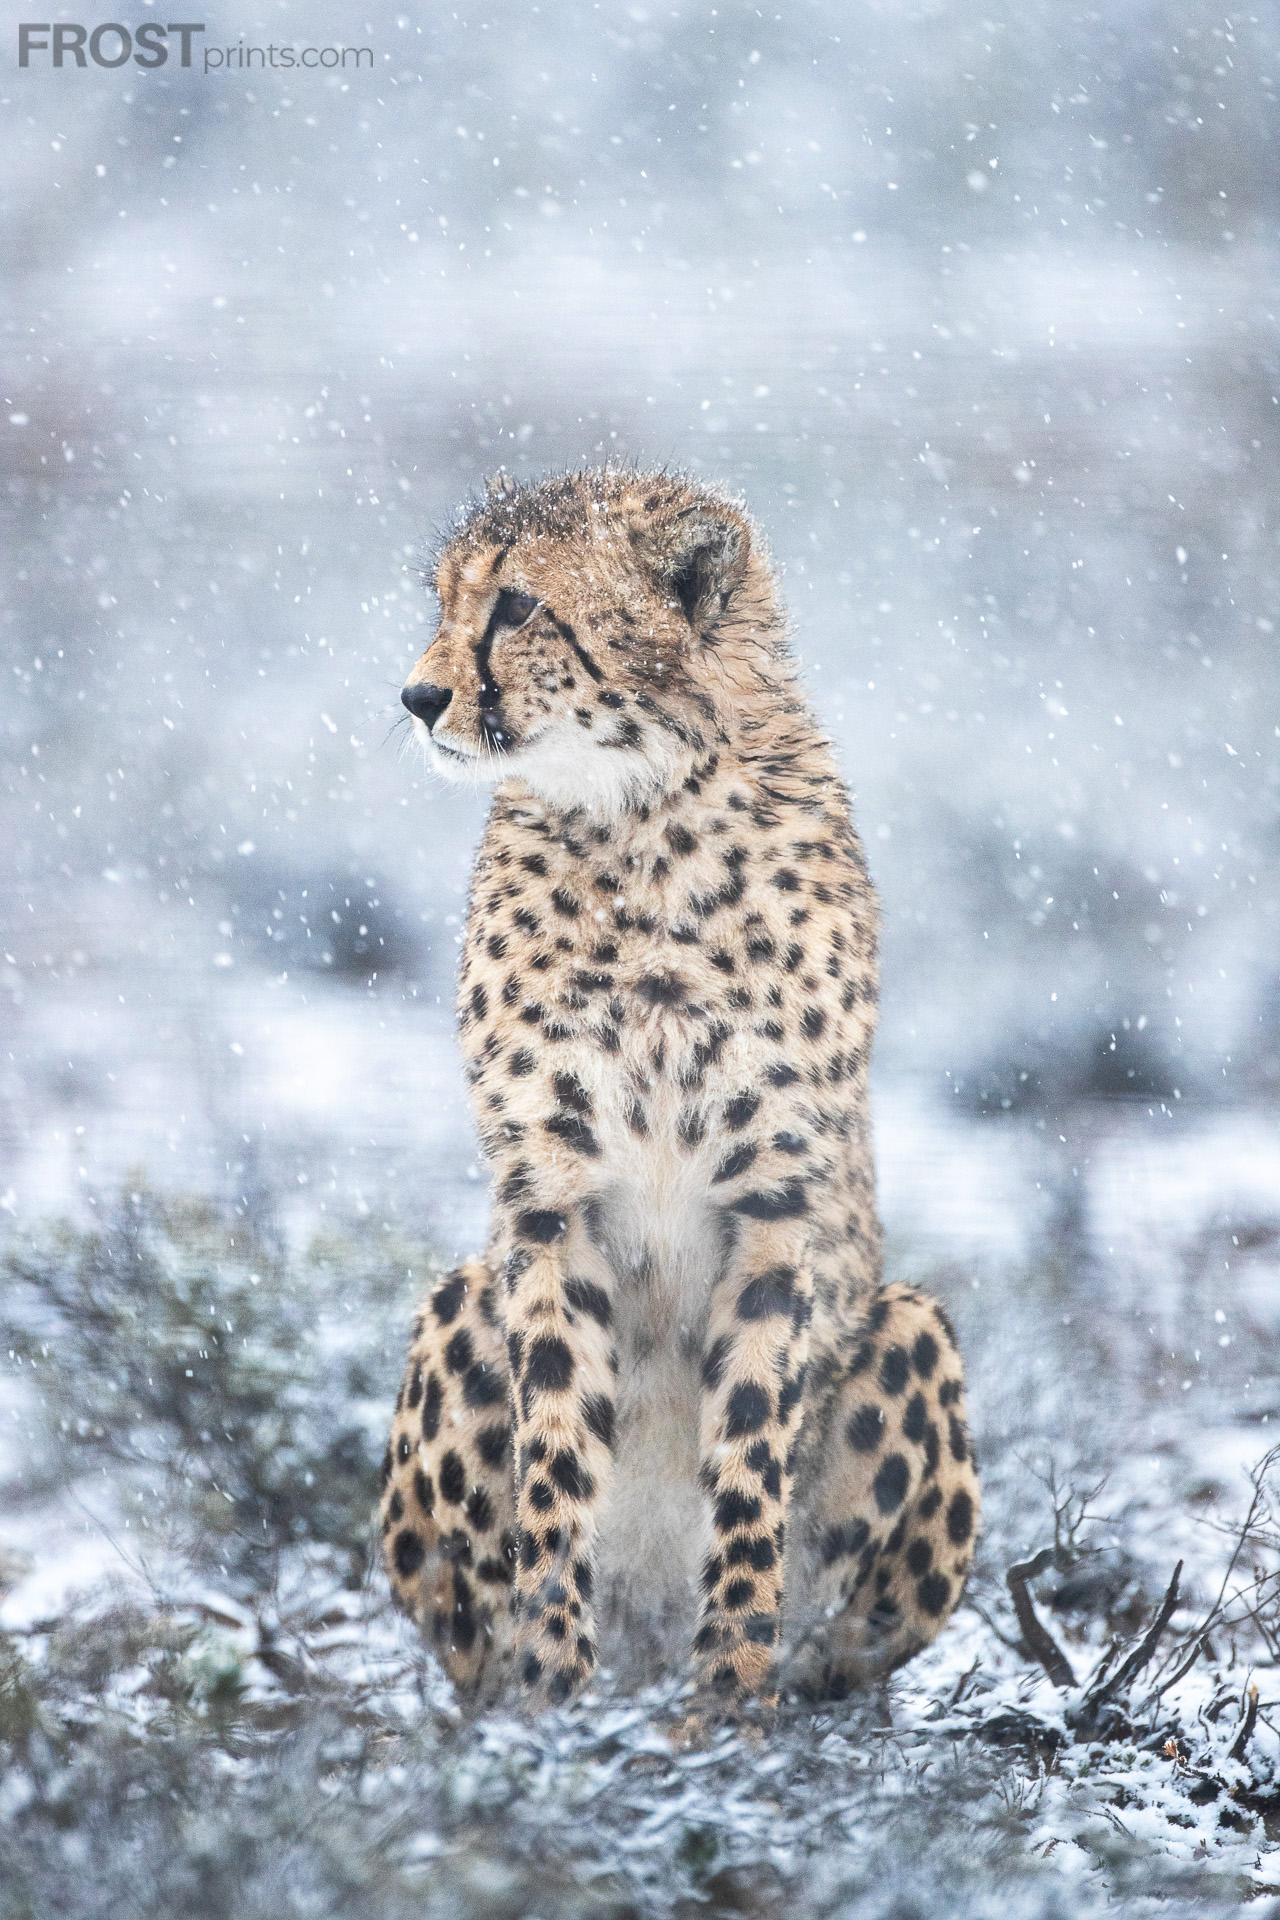 Ice Cats of Africa Prints